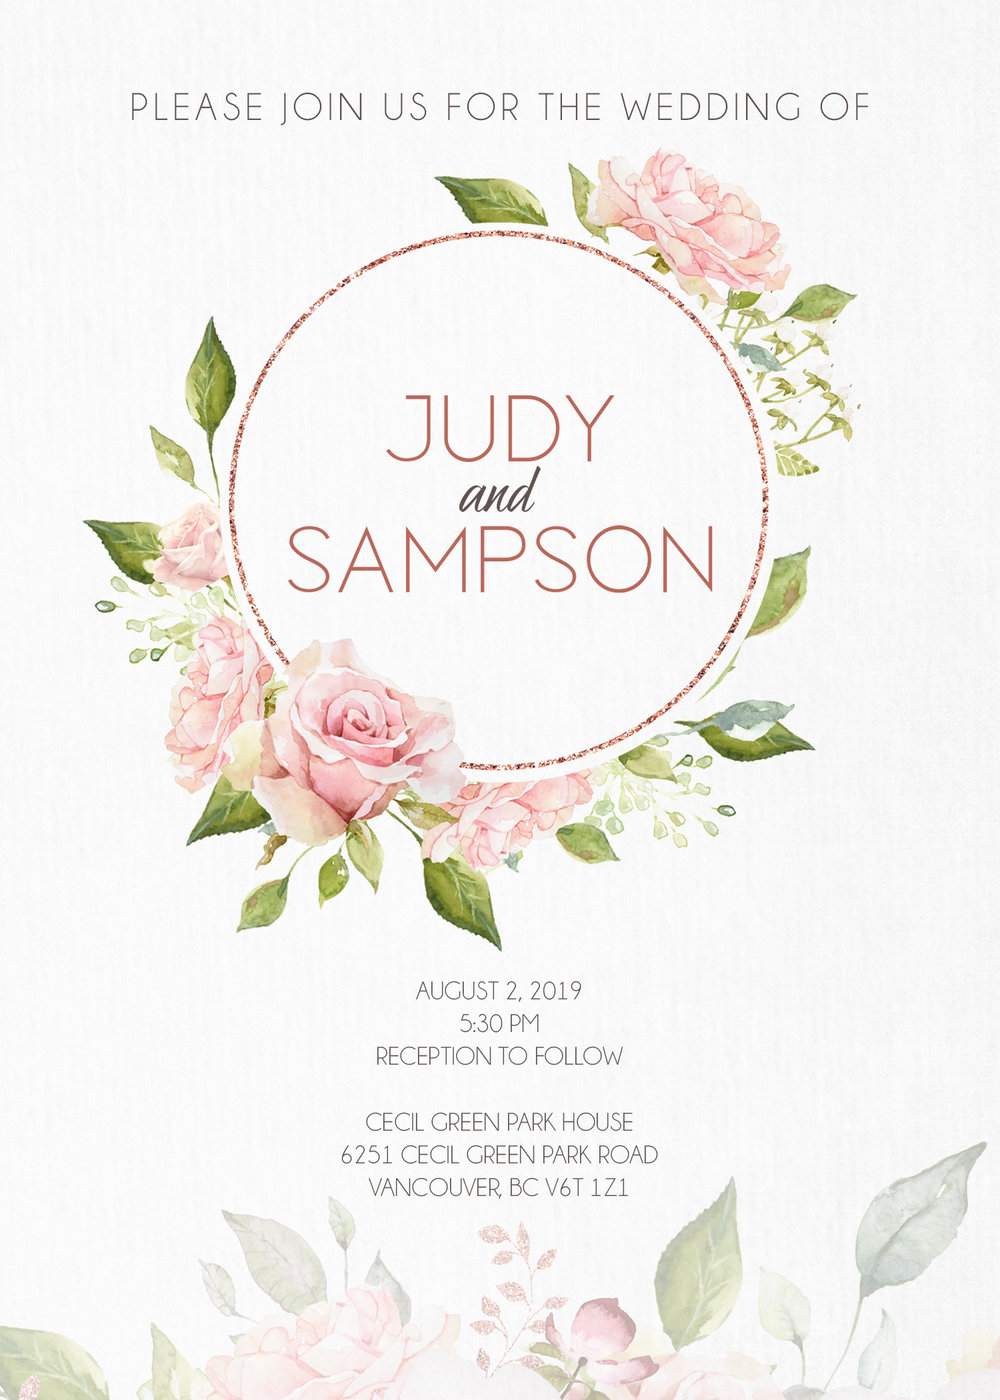 Wedding Invitation Front.jpg